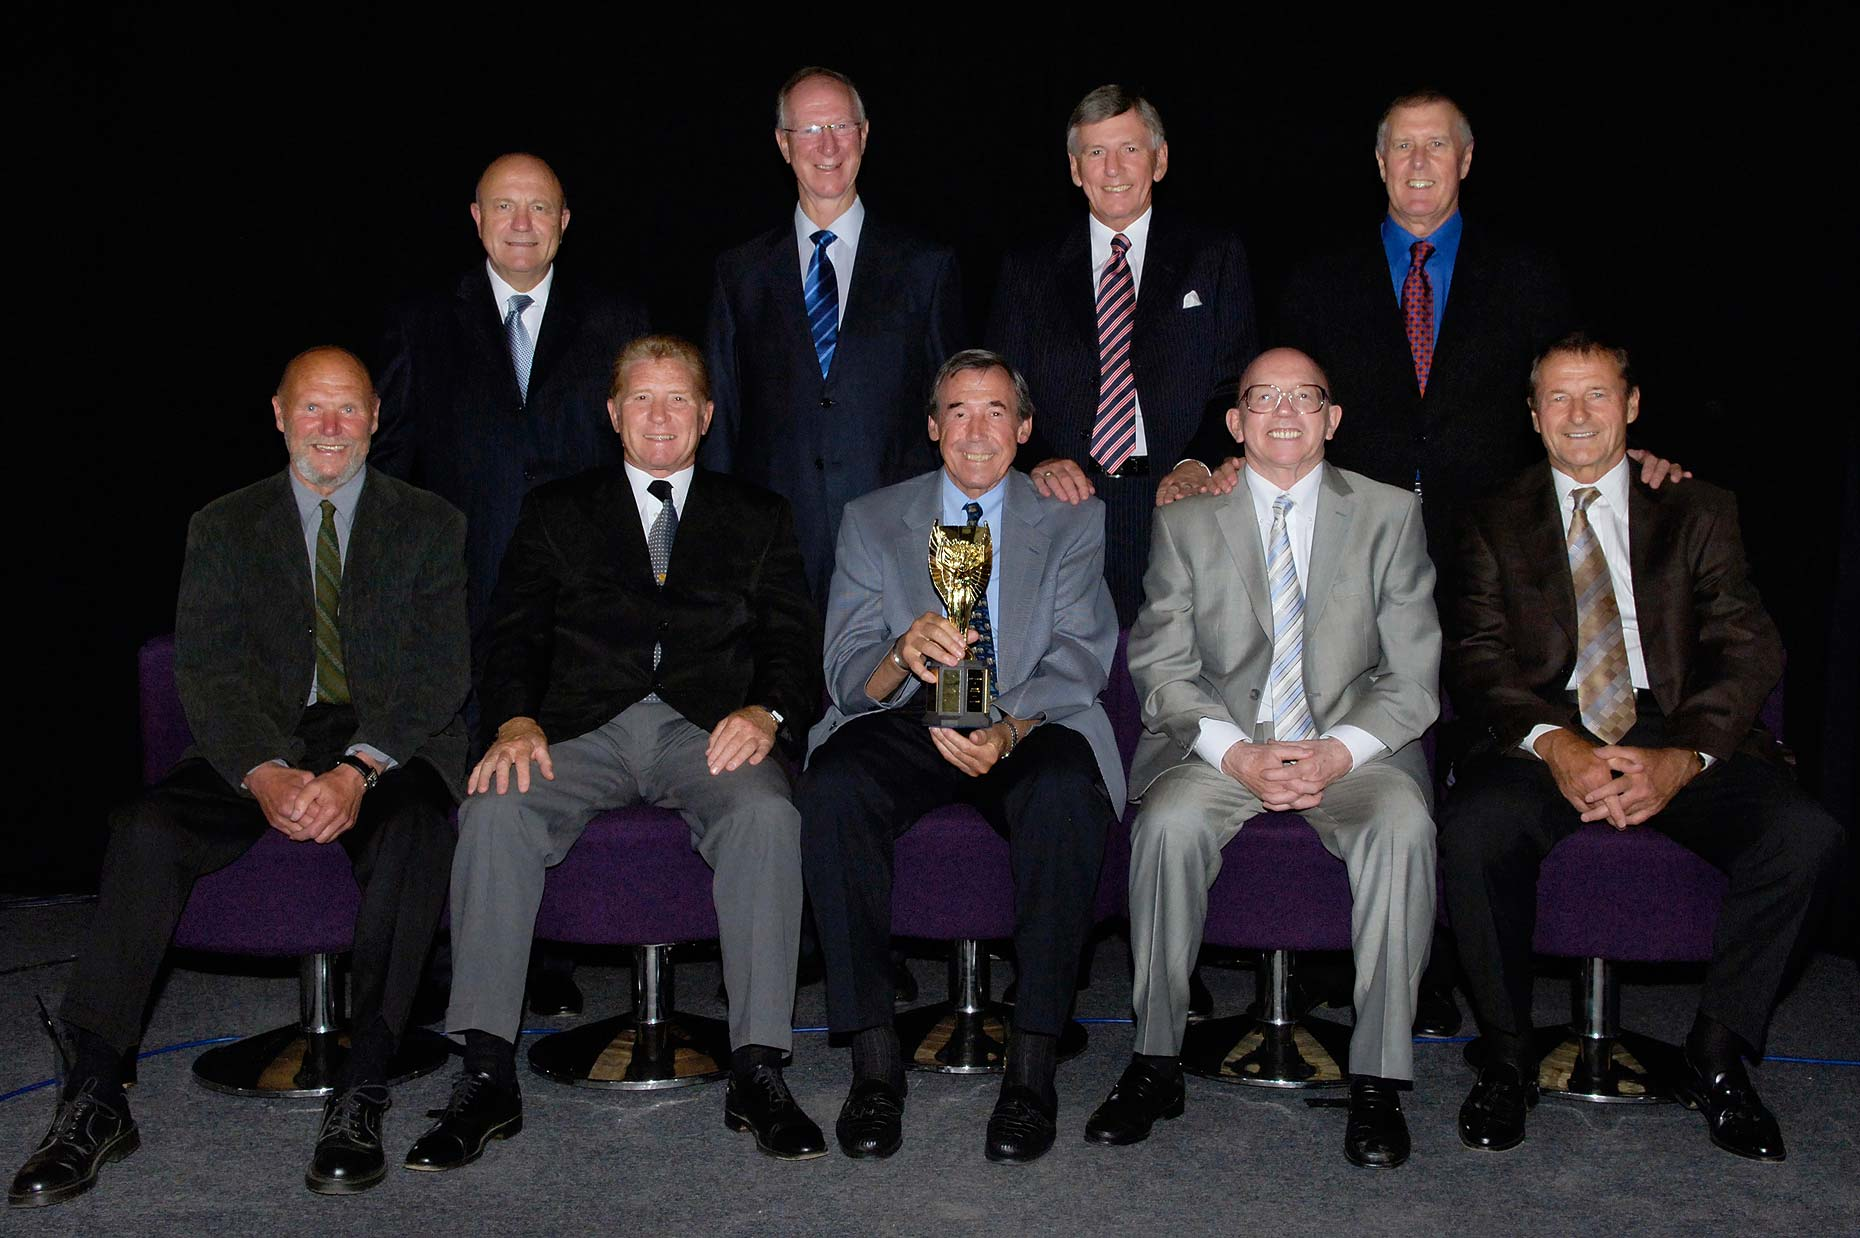 1009 World-Cup-Winners-1966-Football-Team-Bournemouth-Reunion-PR-and-Corporate.jpg